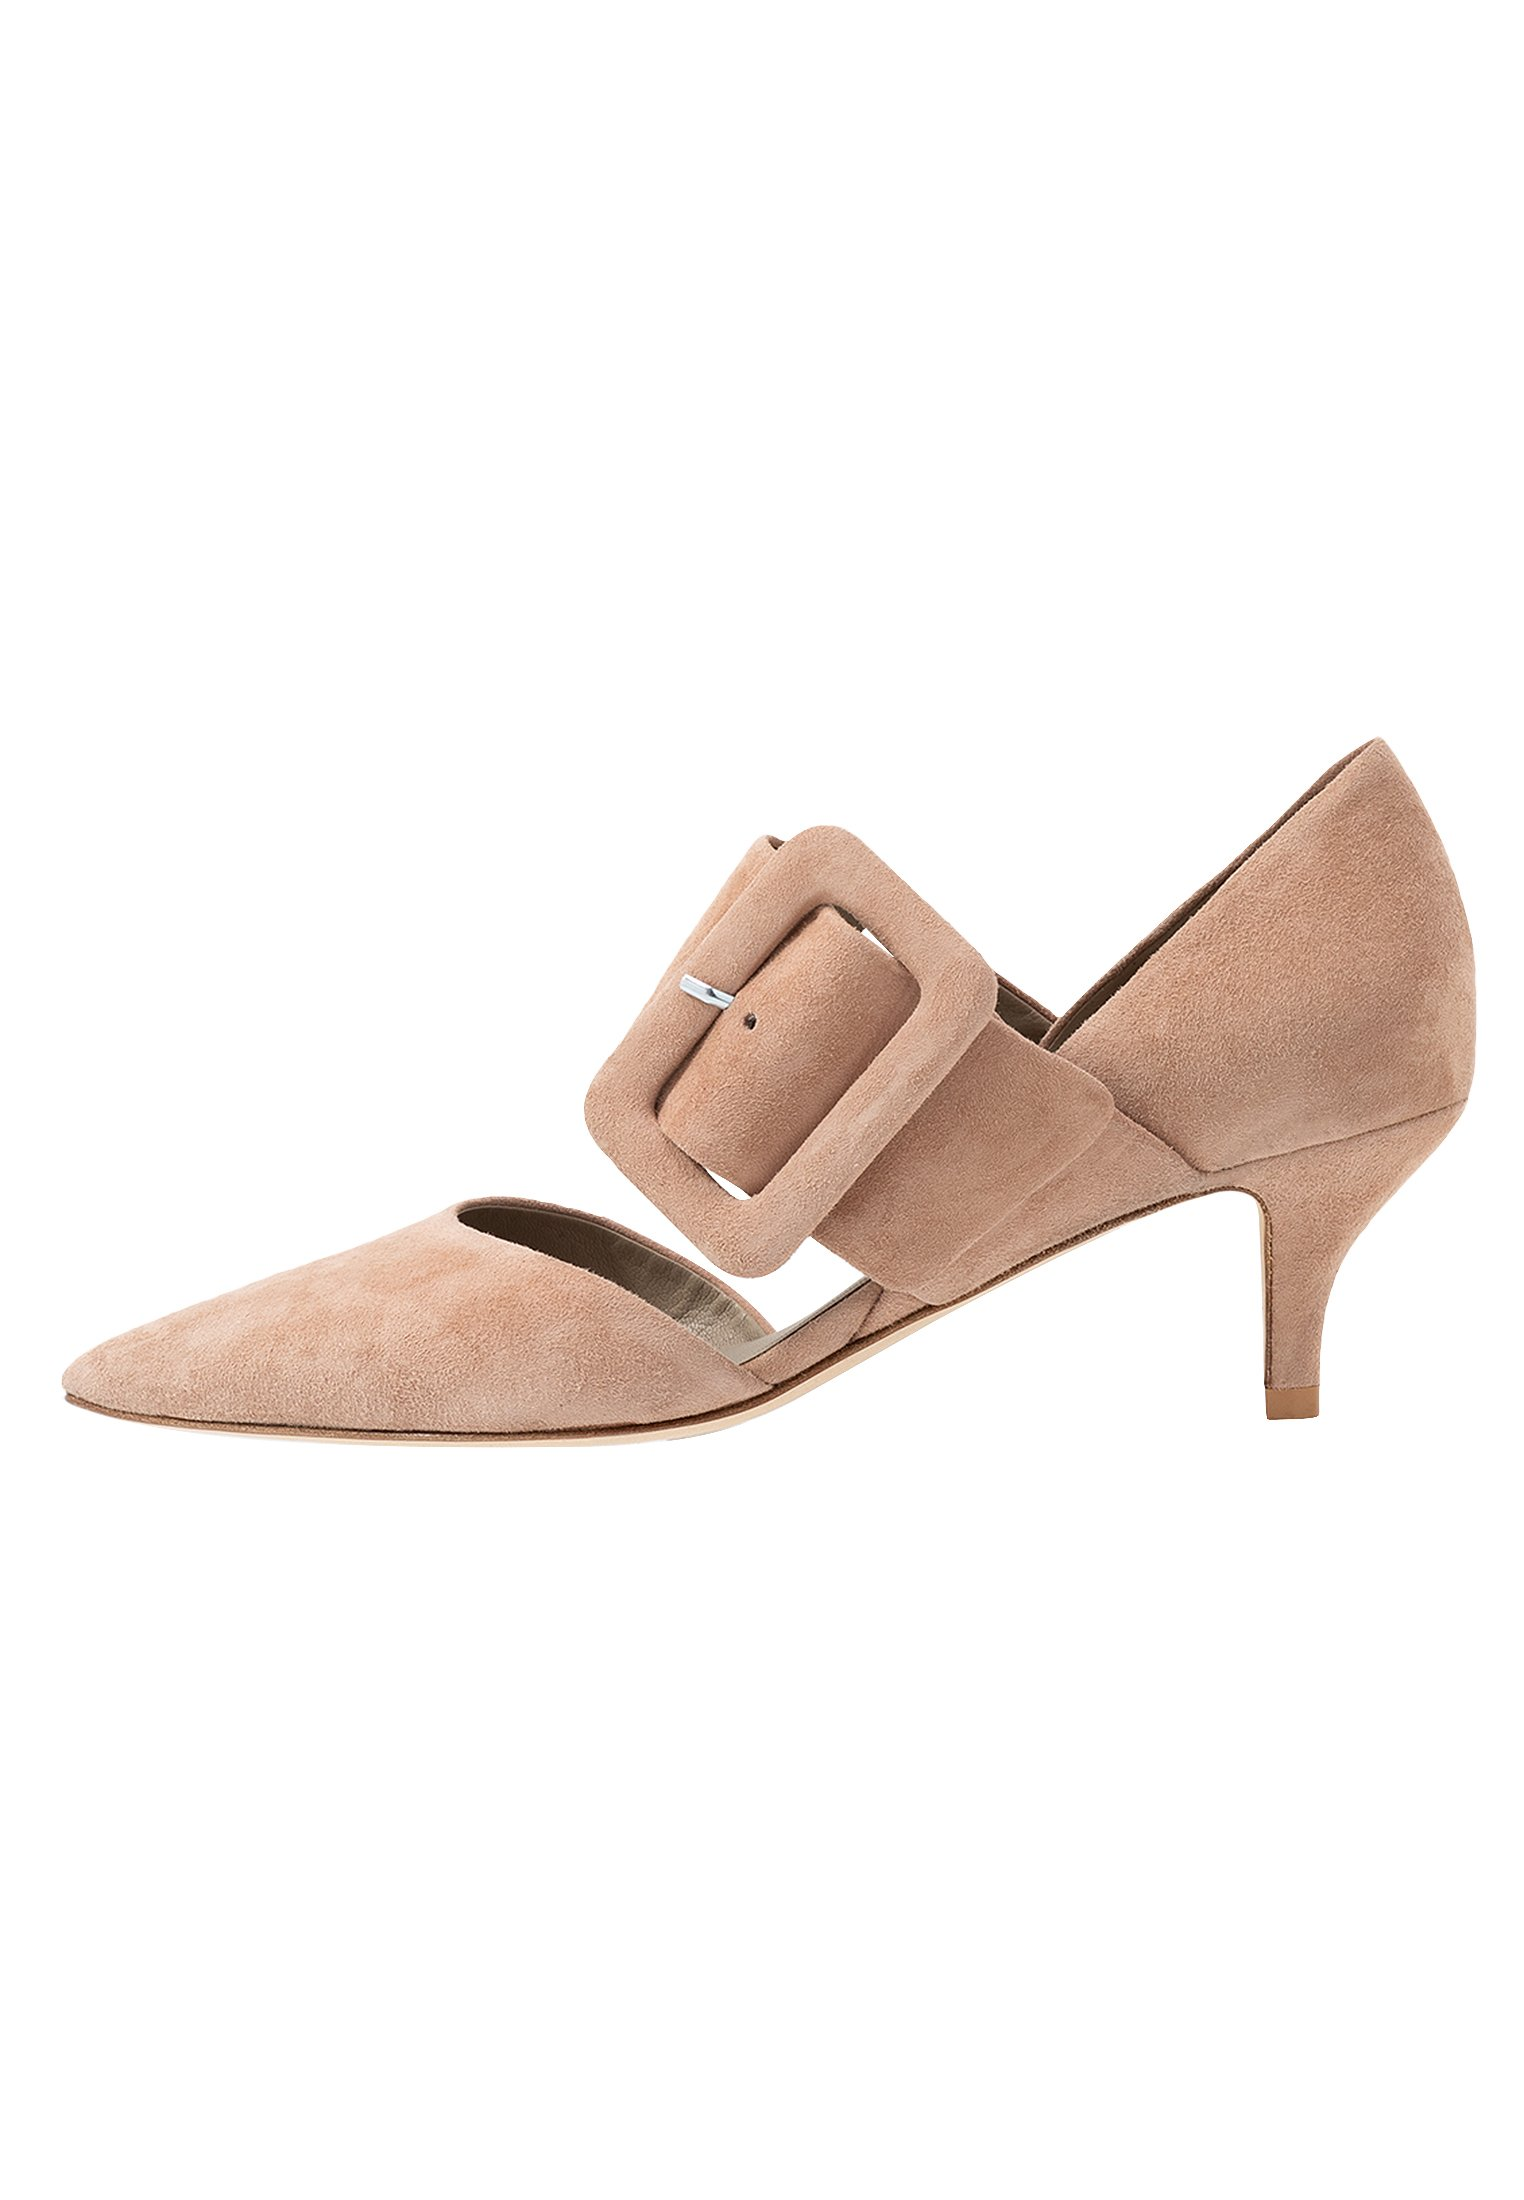 Kennel + Schmenger SELMA - Pumps - nude